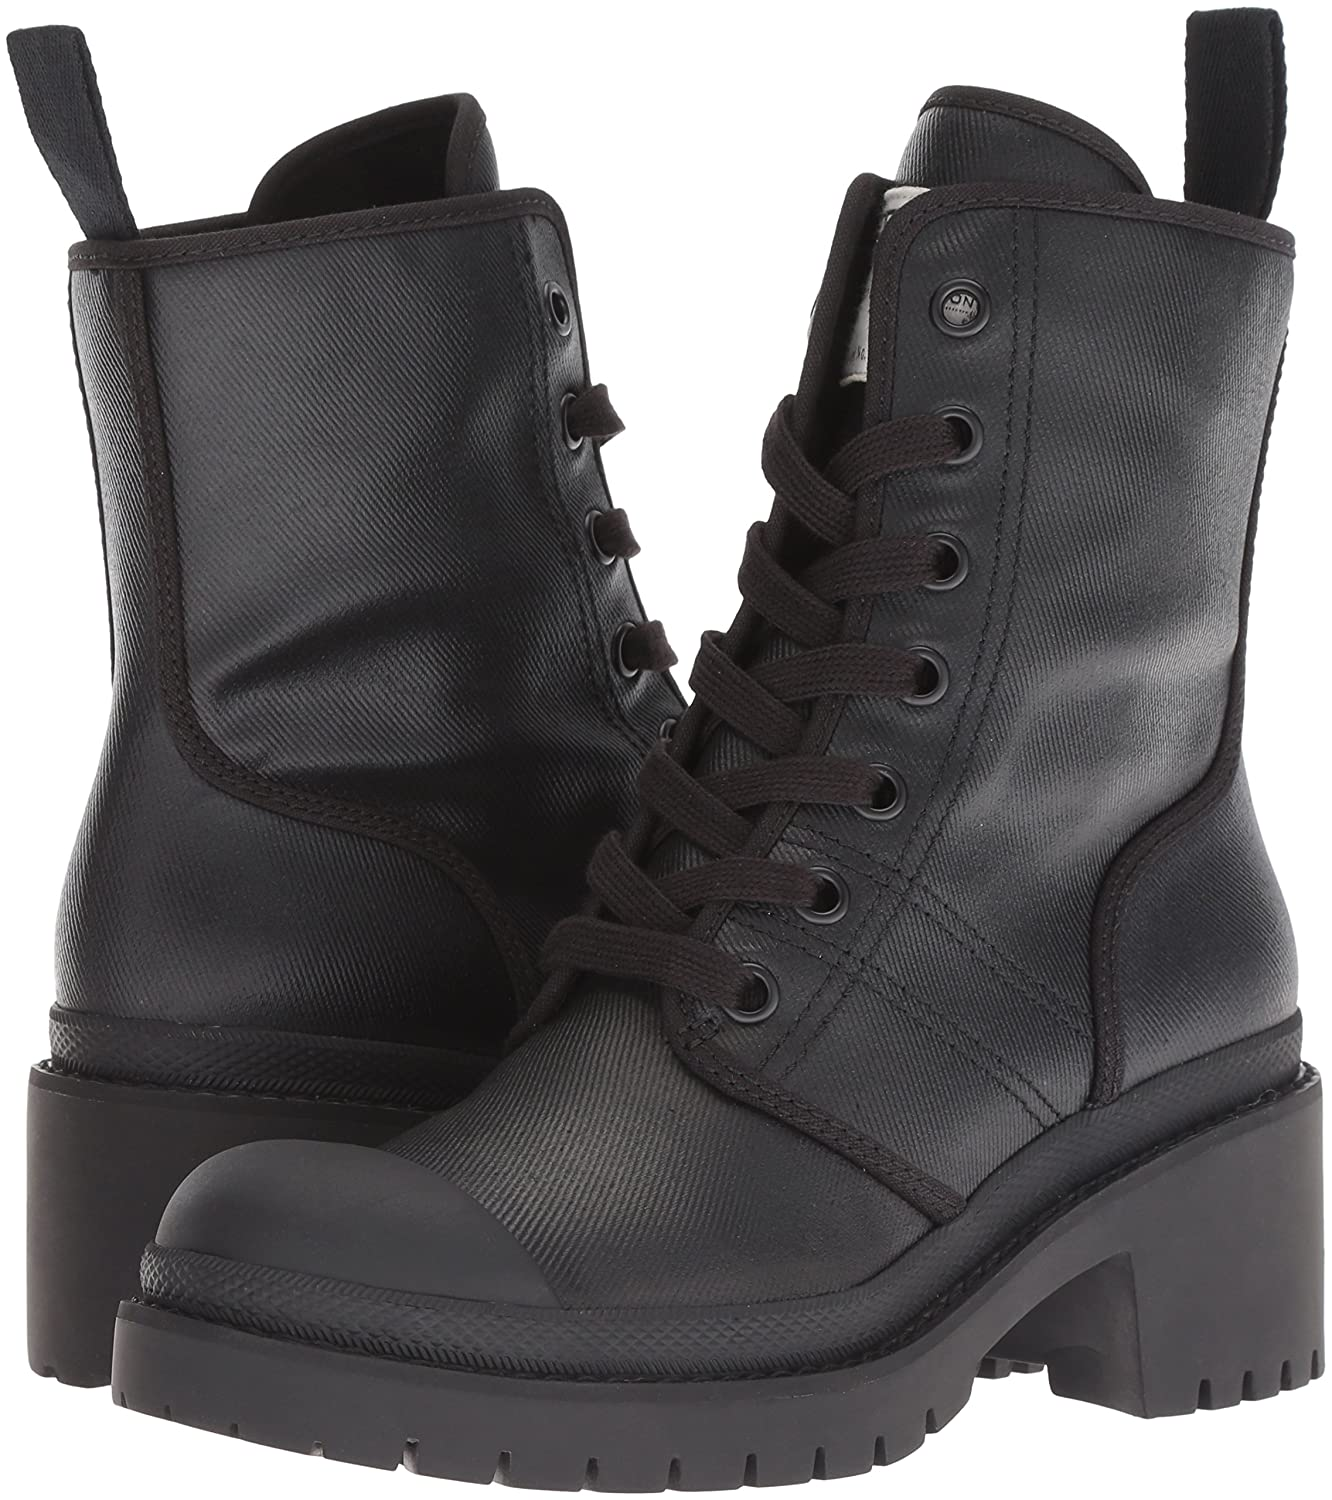 Marc Jacobs Boot Women's Bristol Laced Ankle Boot Jacobs B0787G3V8T 40.5 M EU (10.5 US)|Black 332f97